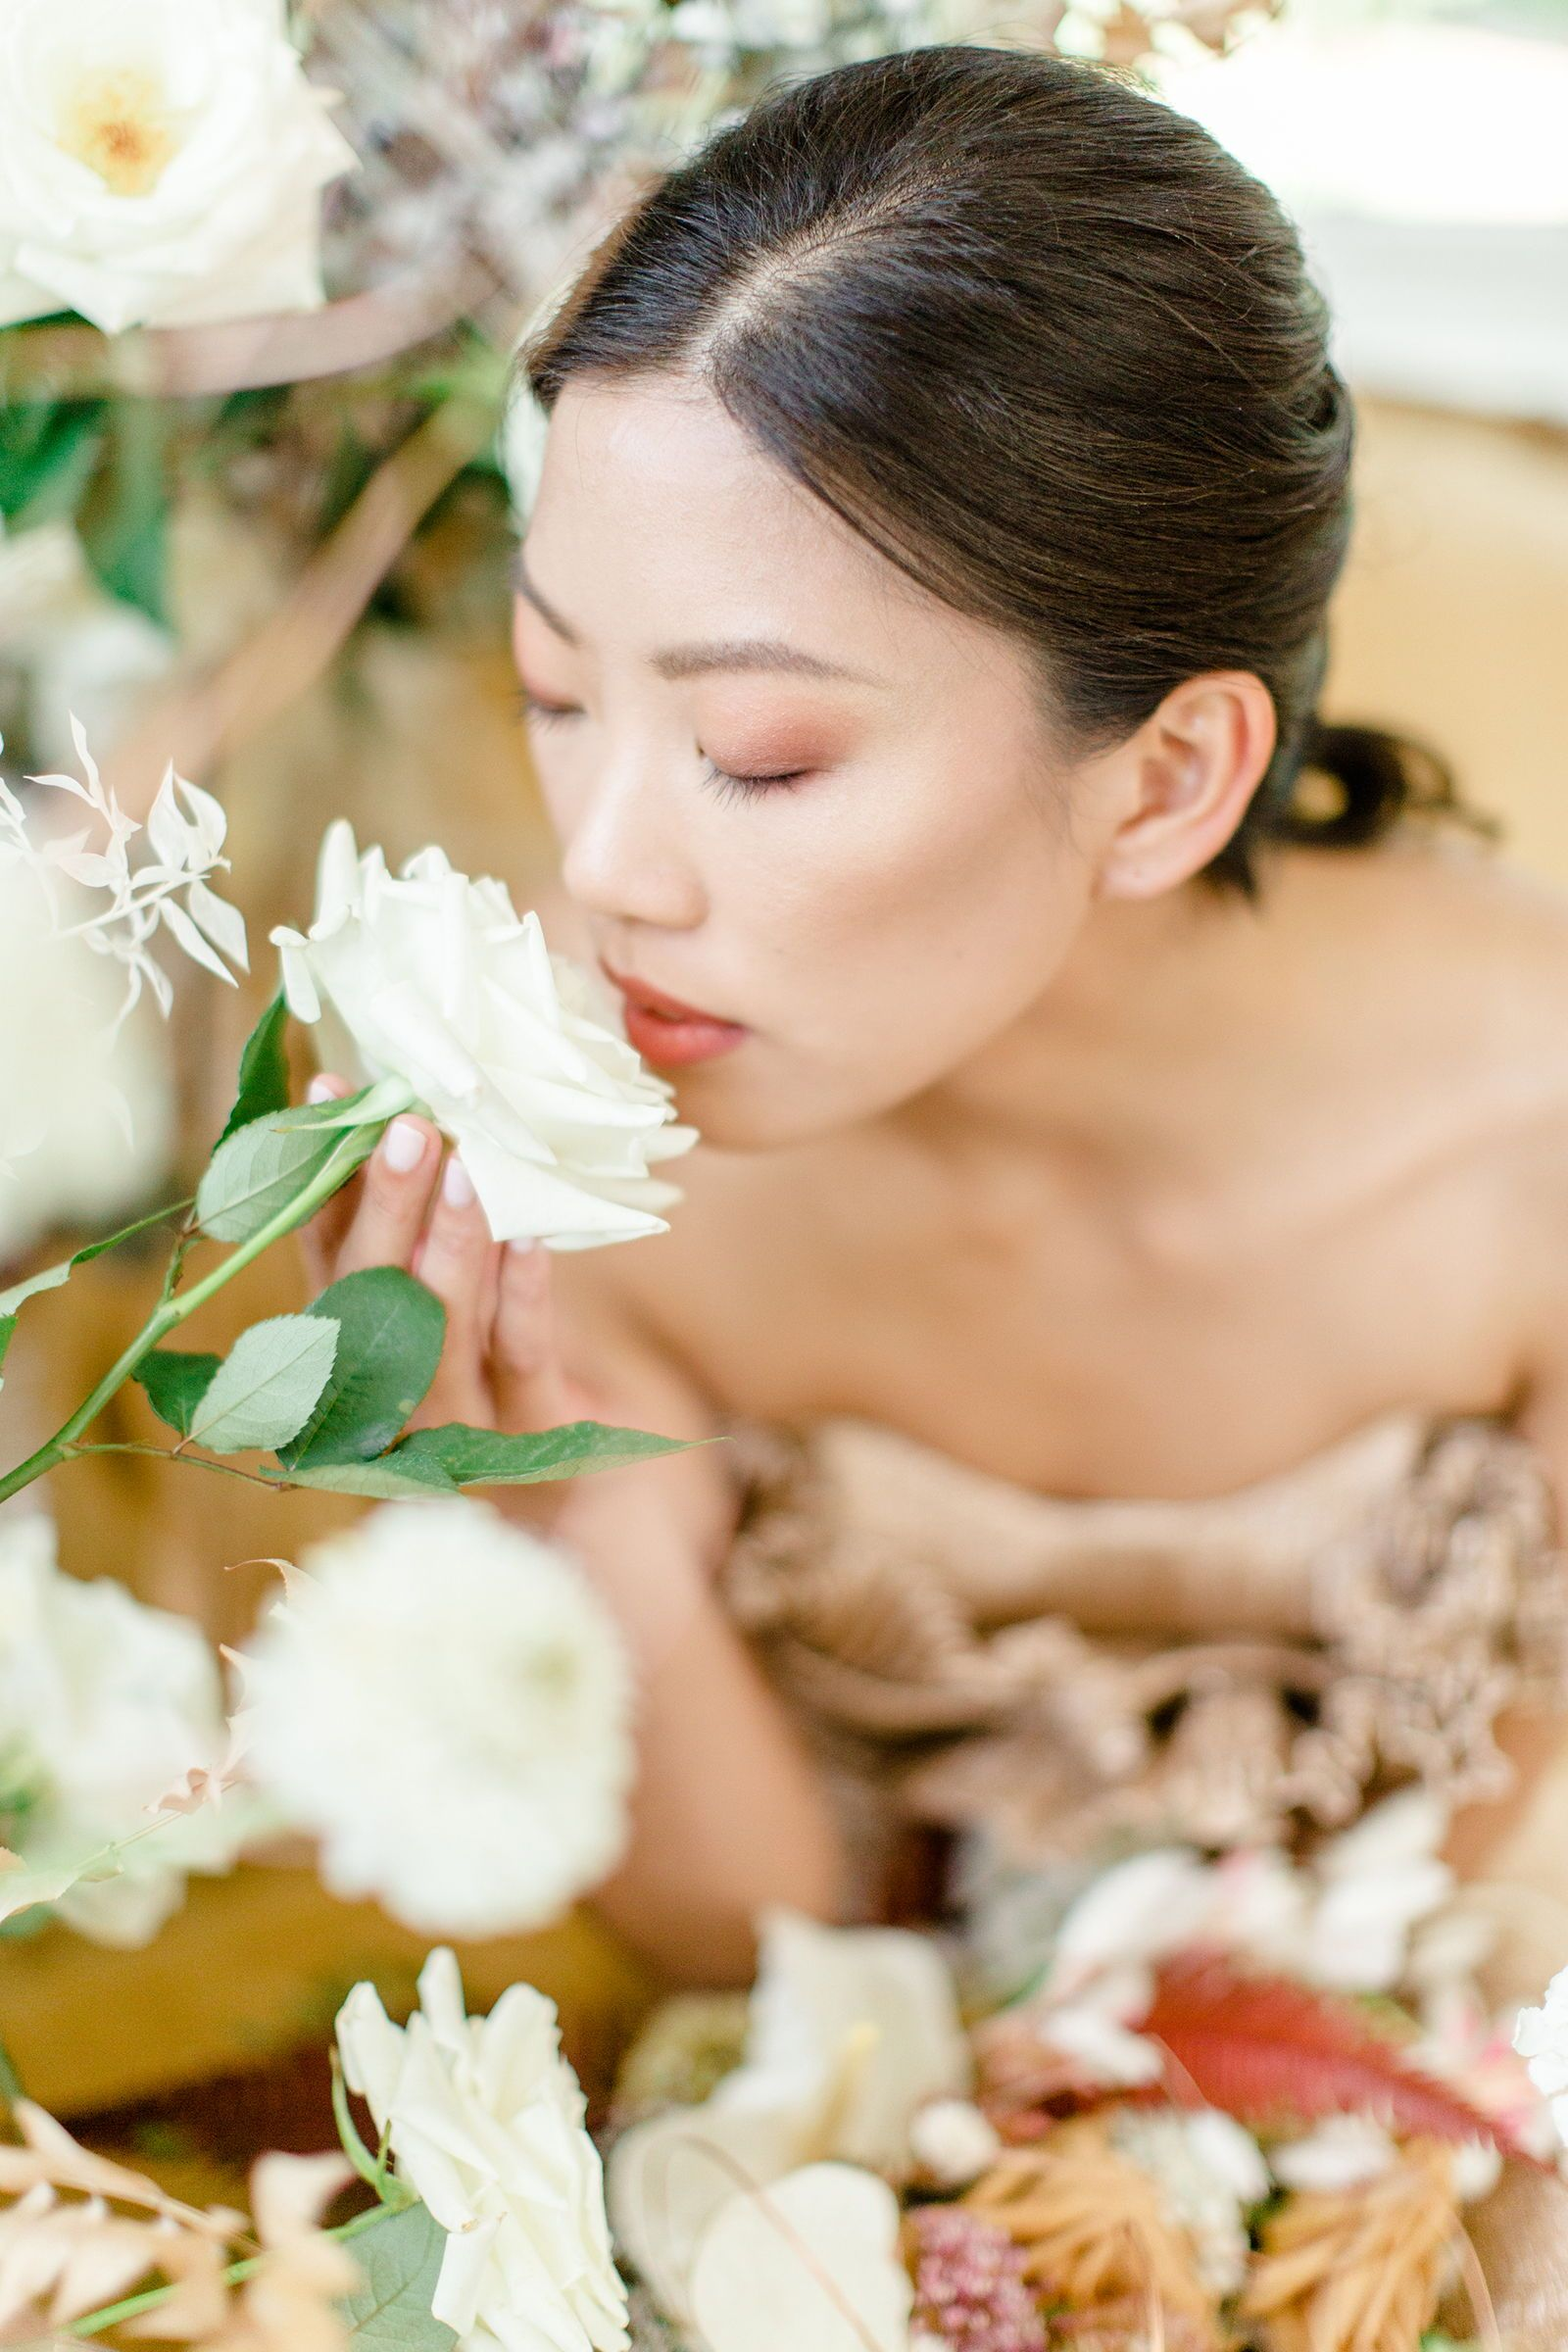 Pin on Bridal Portraits Kate Mannella Photography